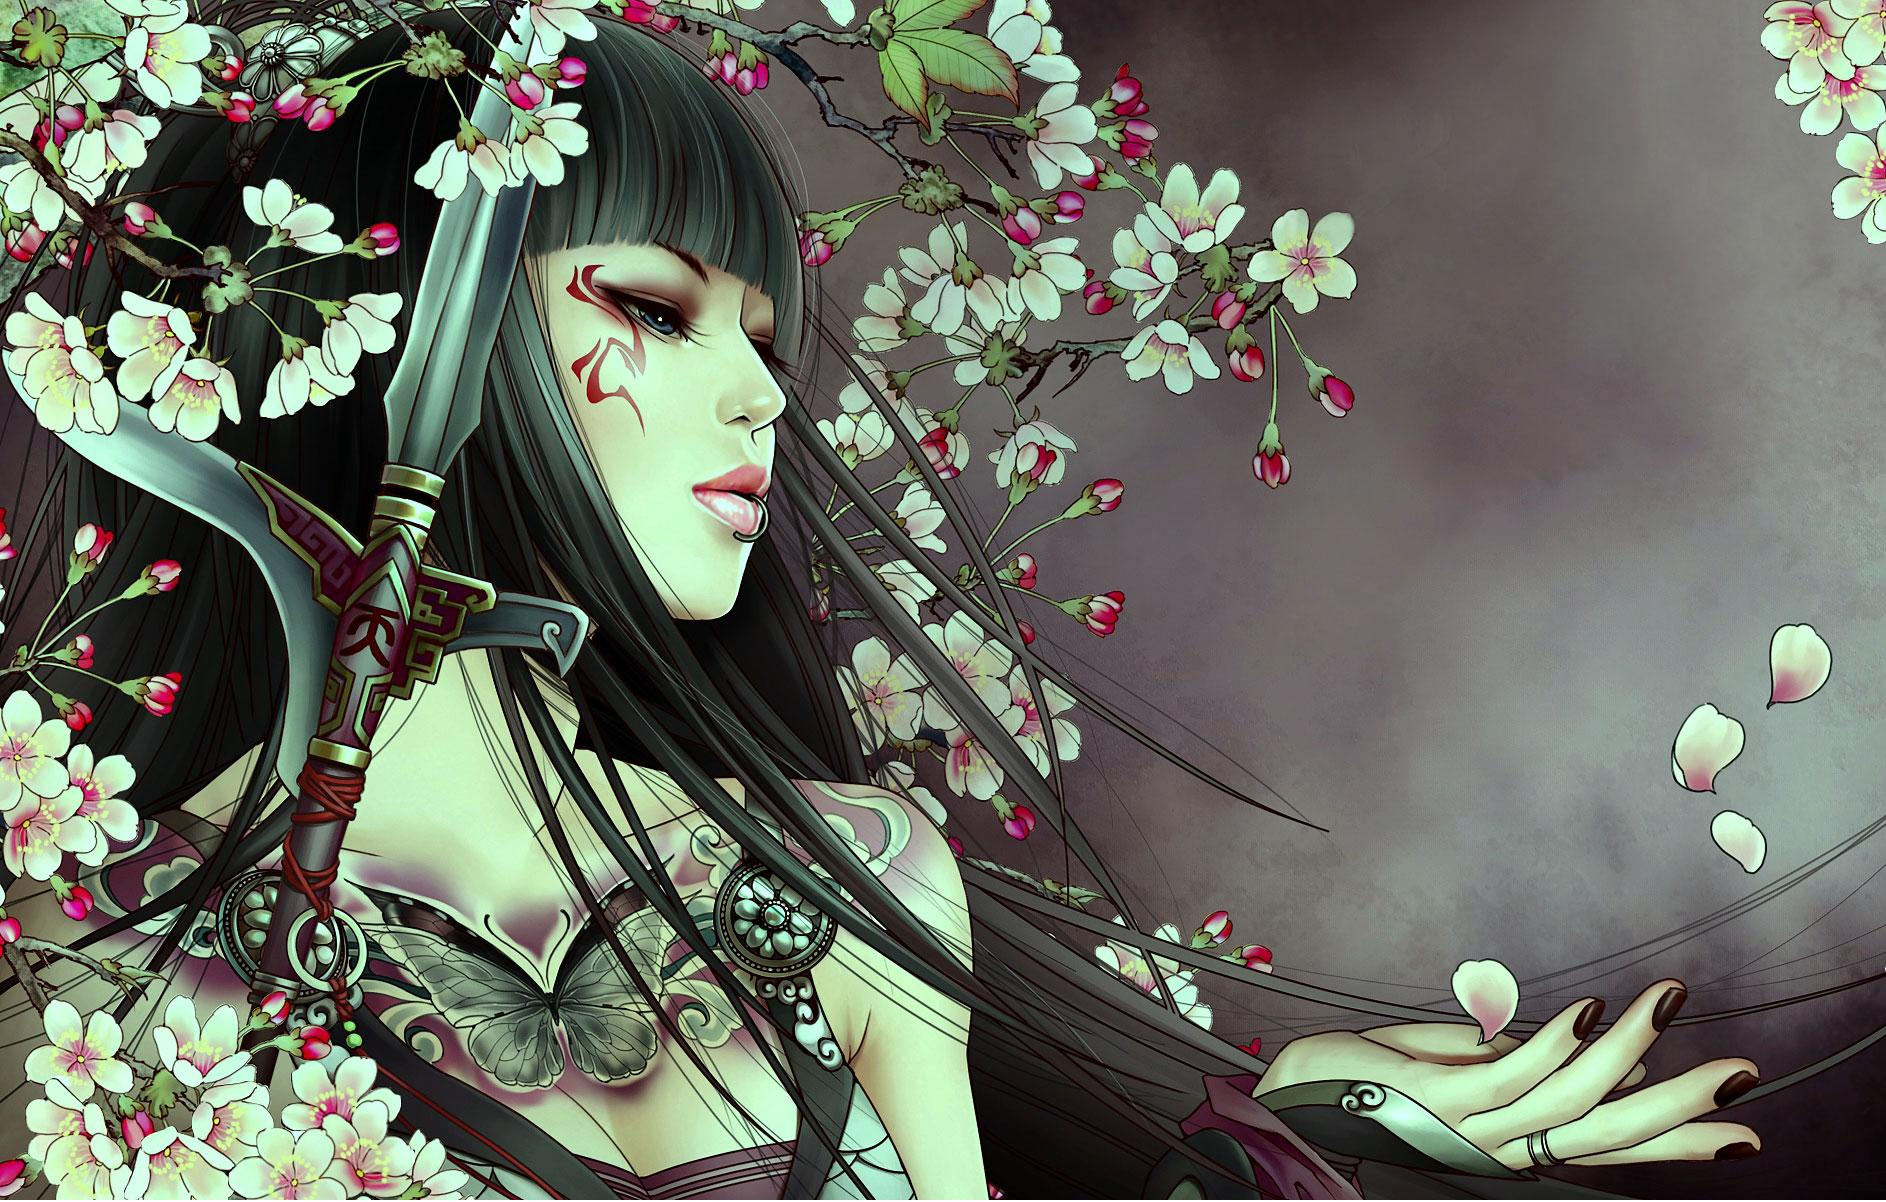 Anime girl with sword wallpapers 1886x1202 412441 - Girl with sword wallpaper ...